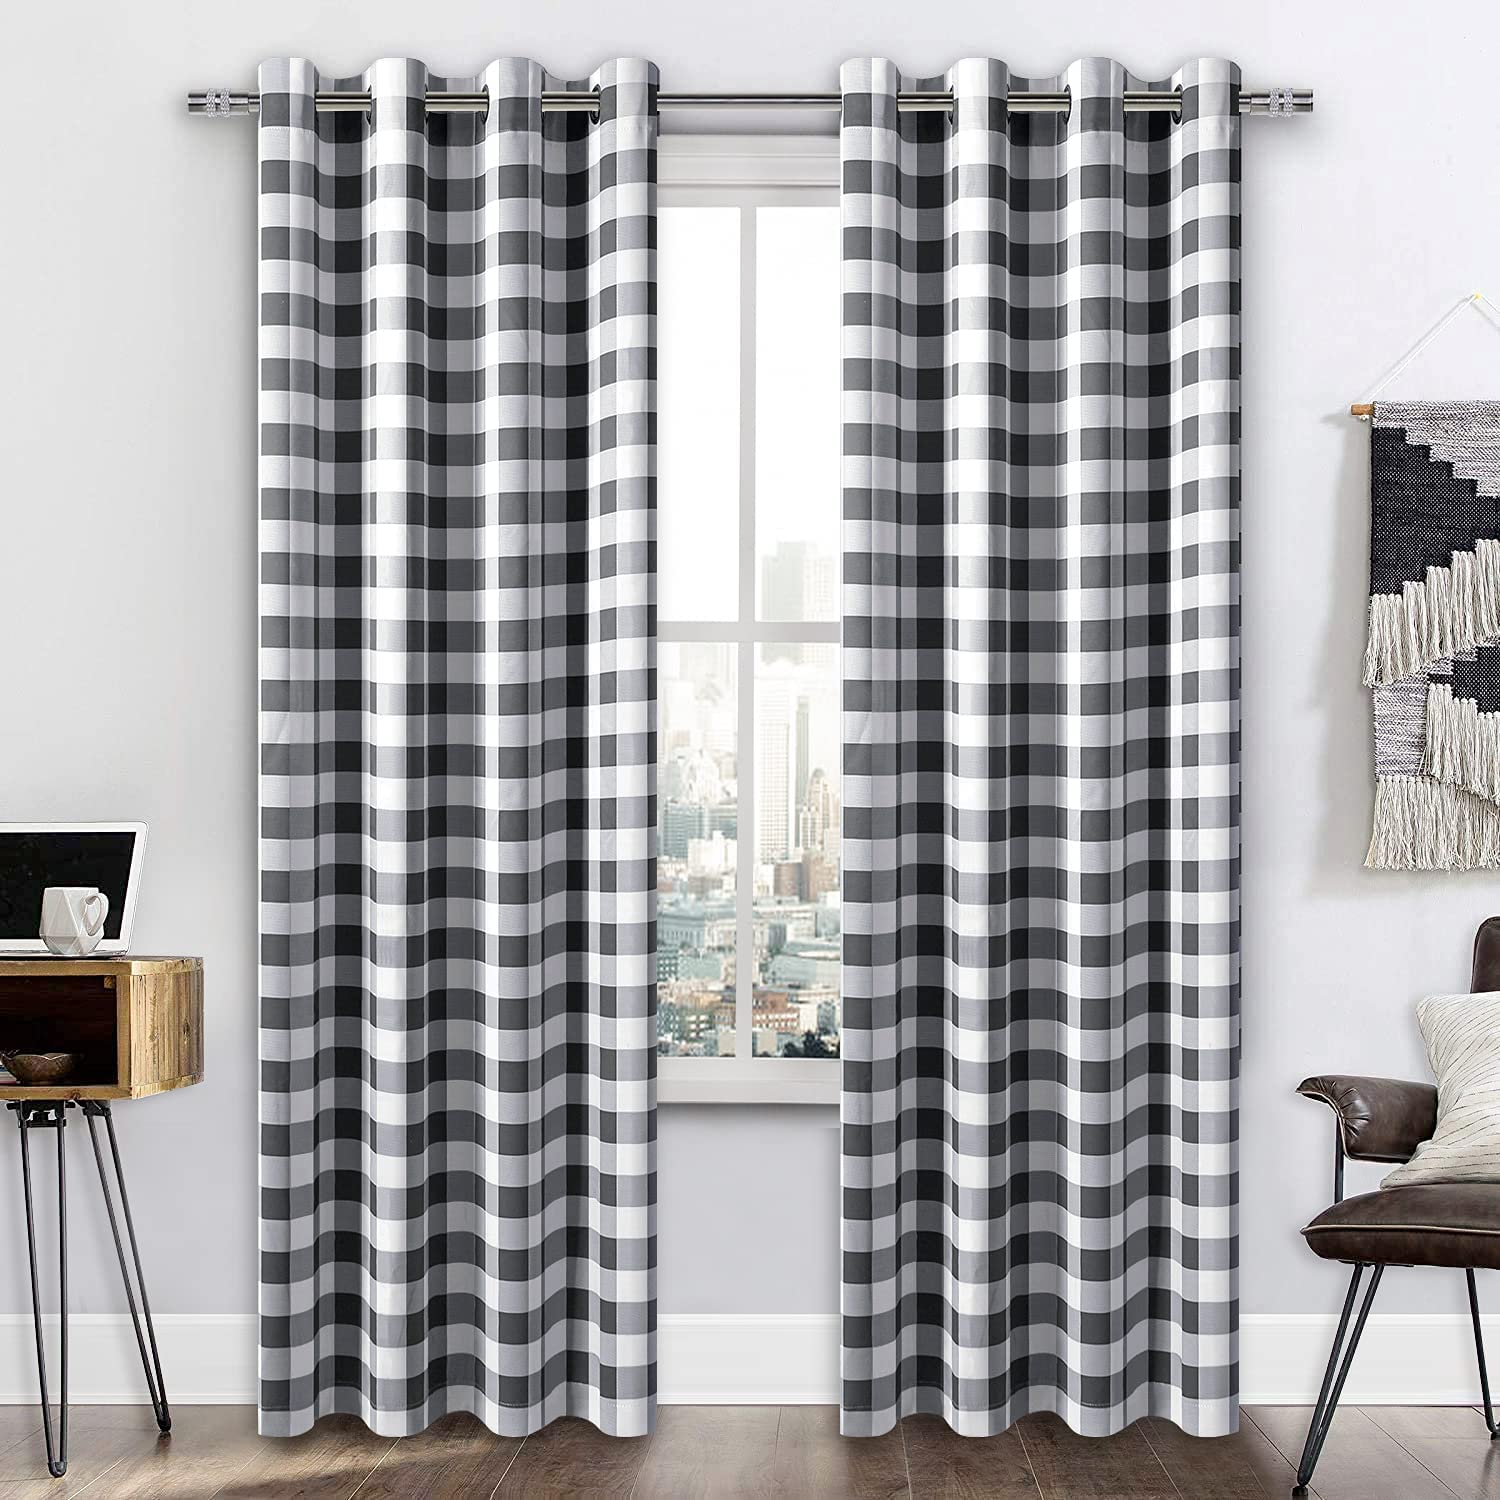 Albuquerque Mall supreme DWCN Buffalo Plaid Blackout Curtains Thermal for Insula Bedroom-